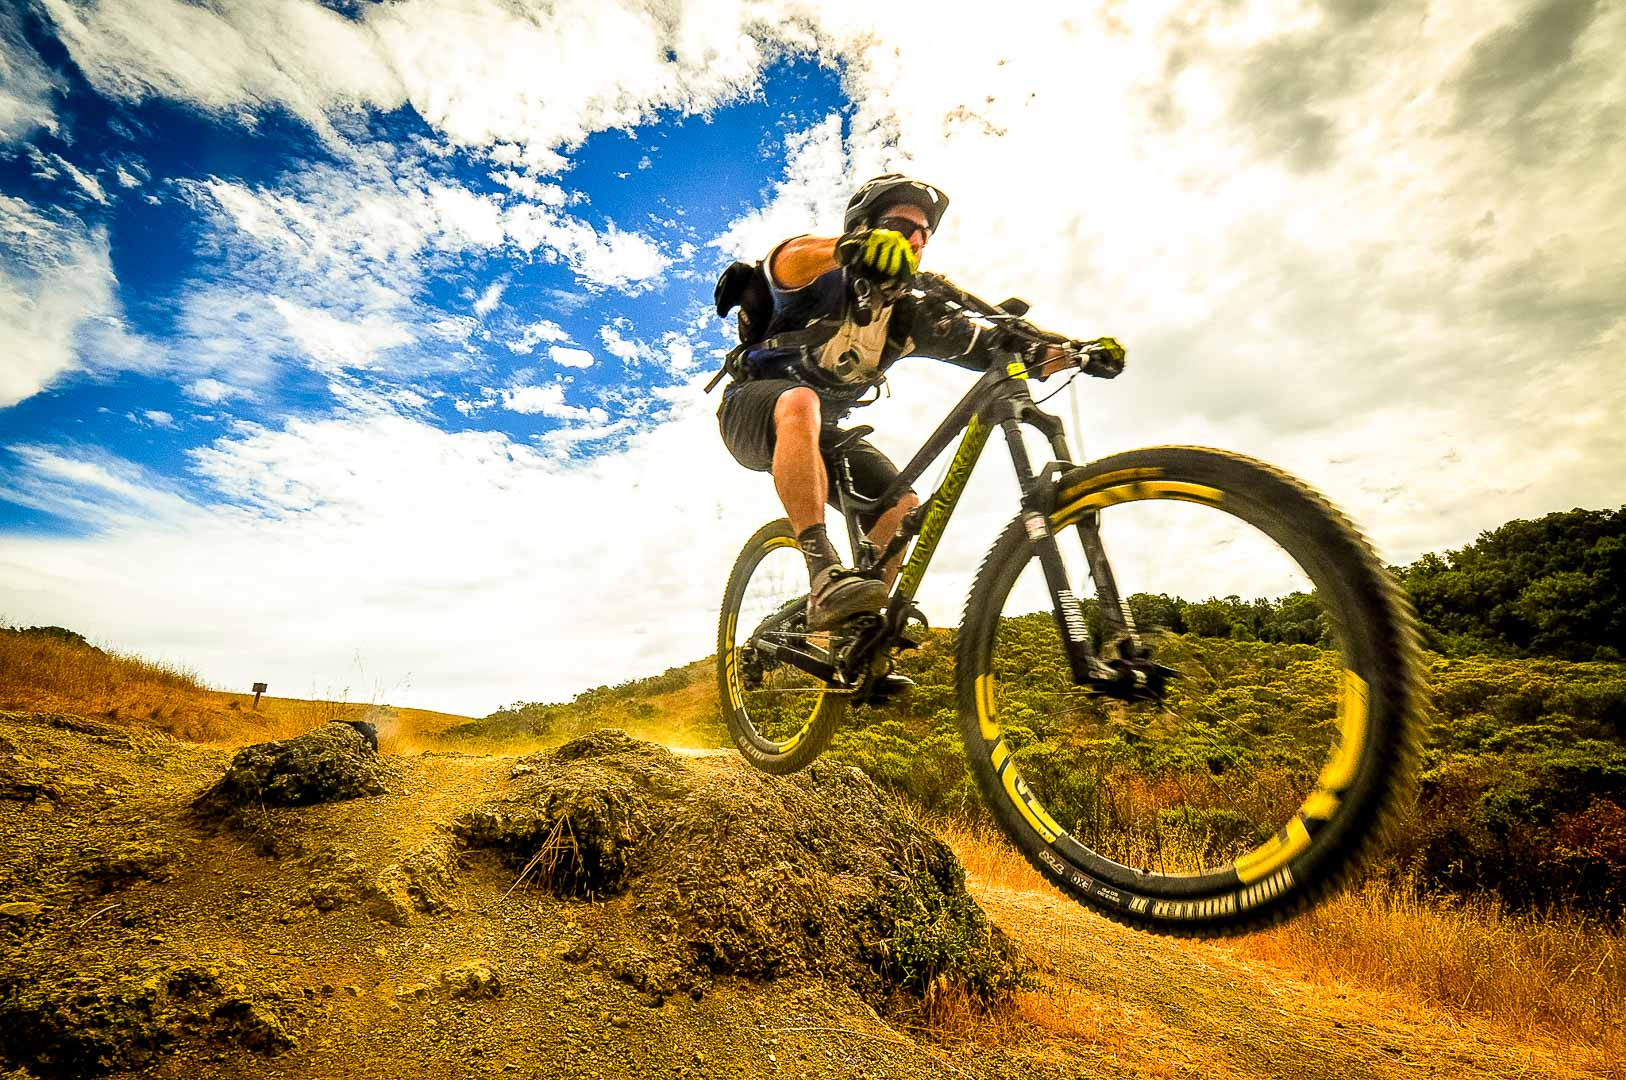 Best Mountain Bike Under 1000 Buyers Guide And Reviews Parts On To Absorb Bumps In A Road Shock Absorber With